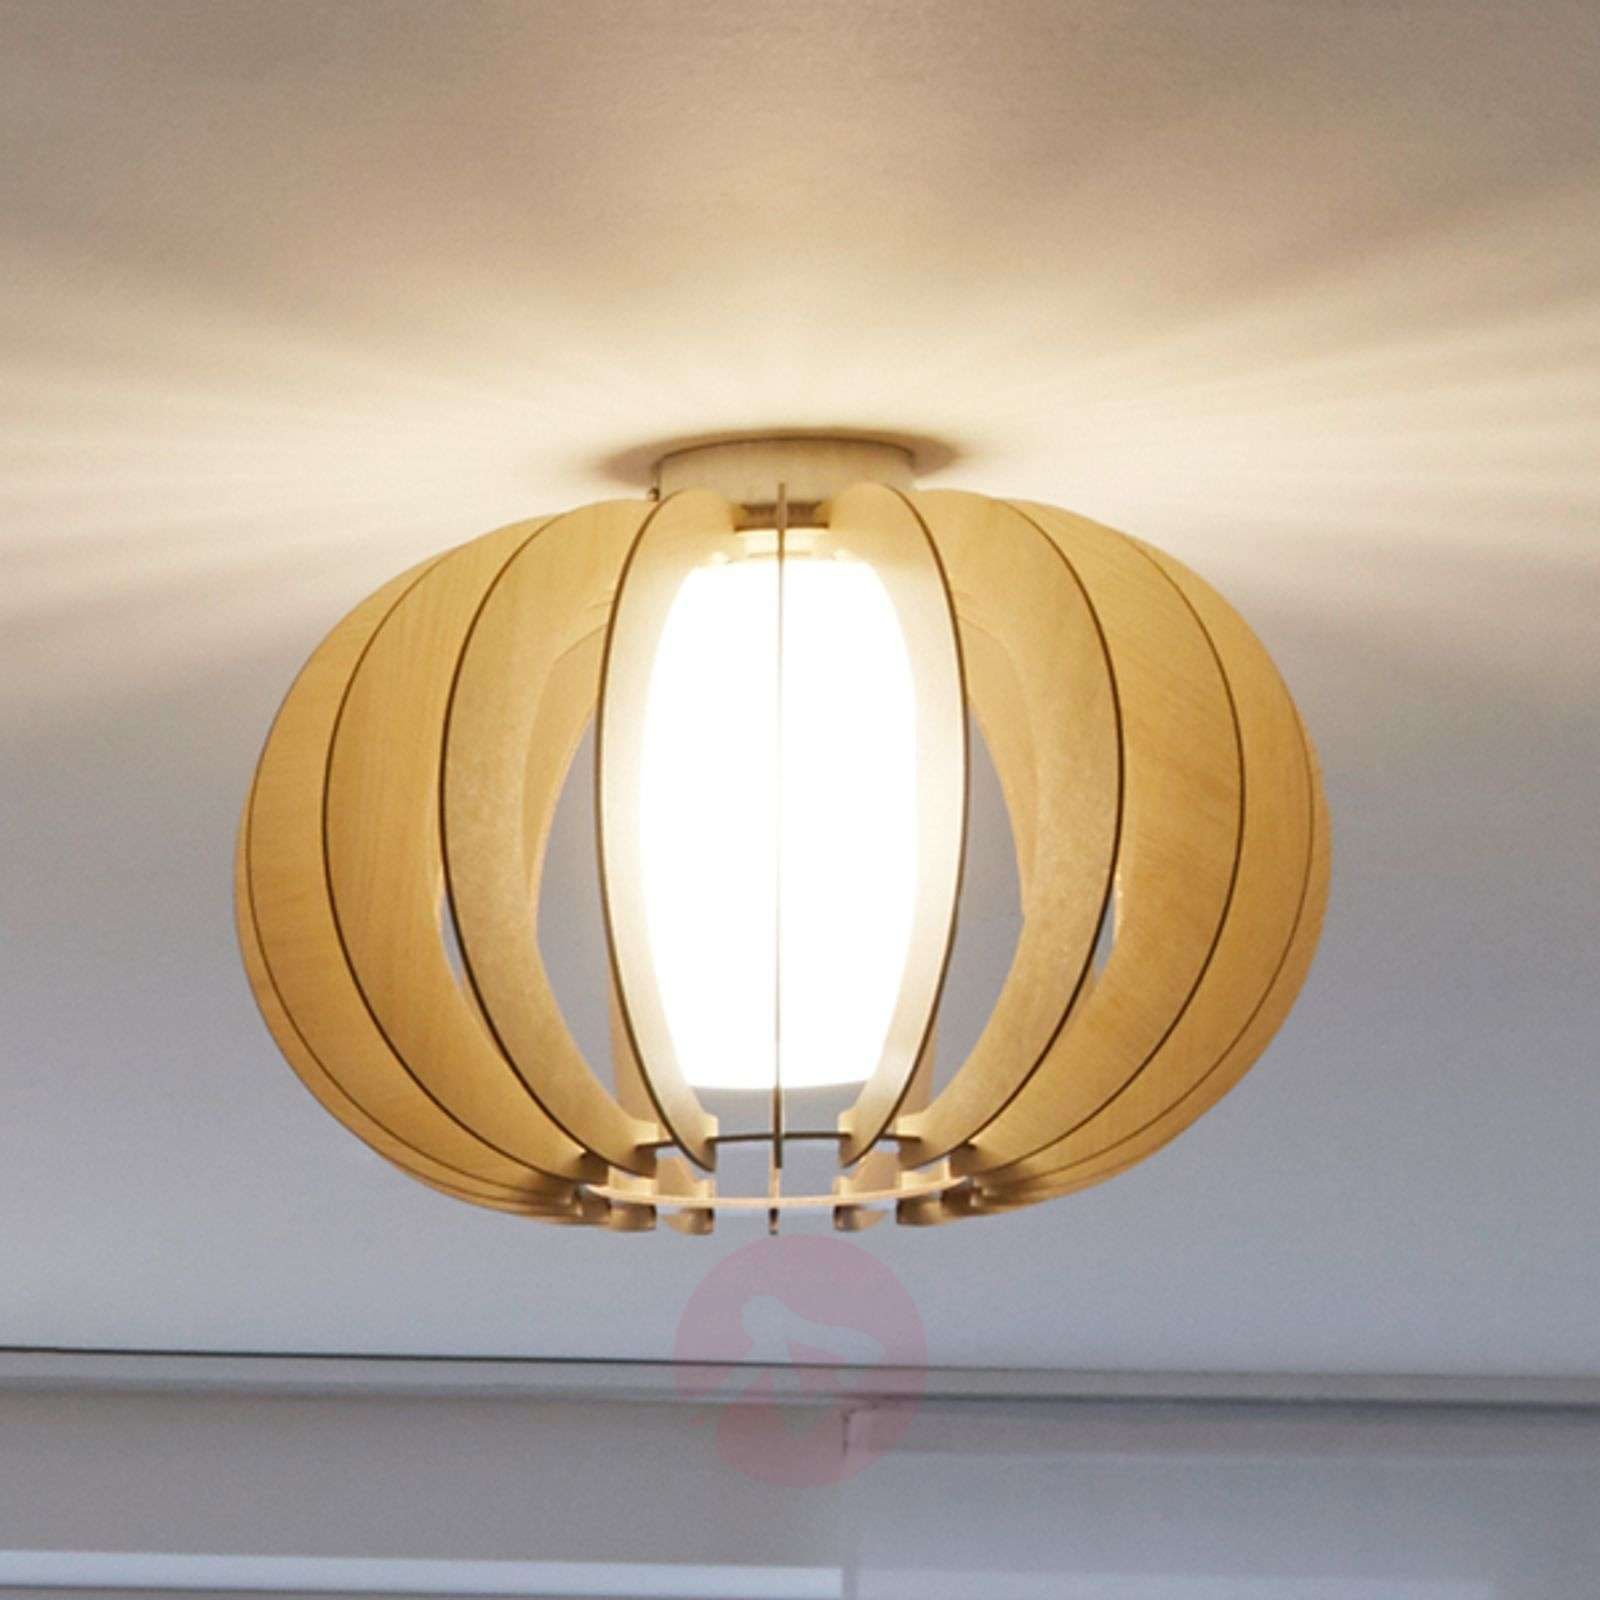 ... Natural Looking Stellato Ceiling Lamp 3031897 01 ... Part 49